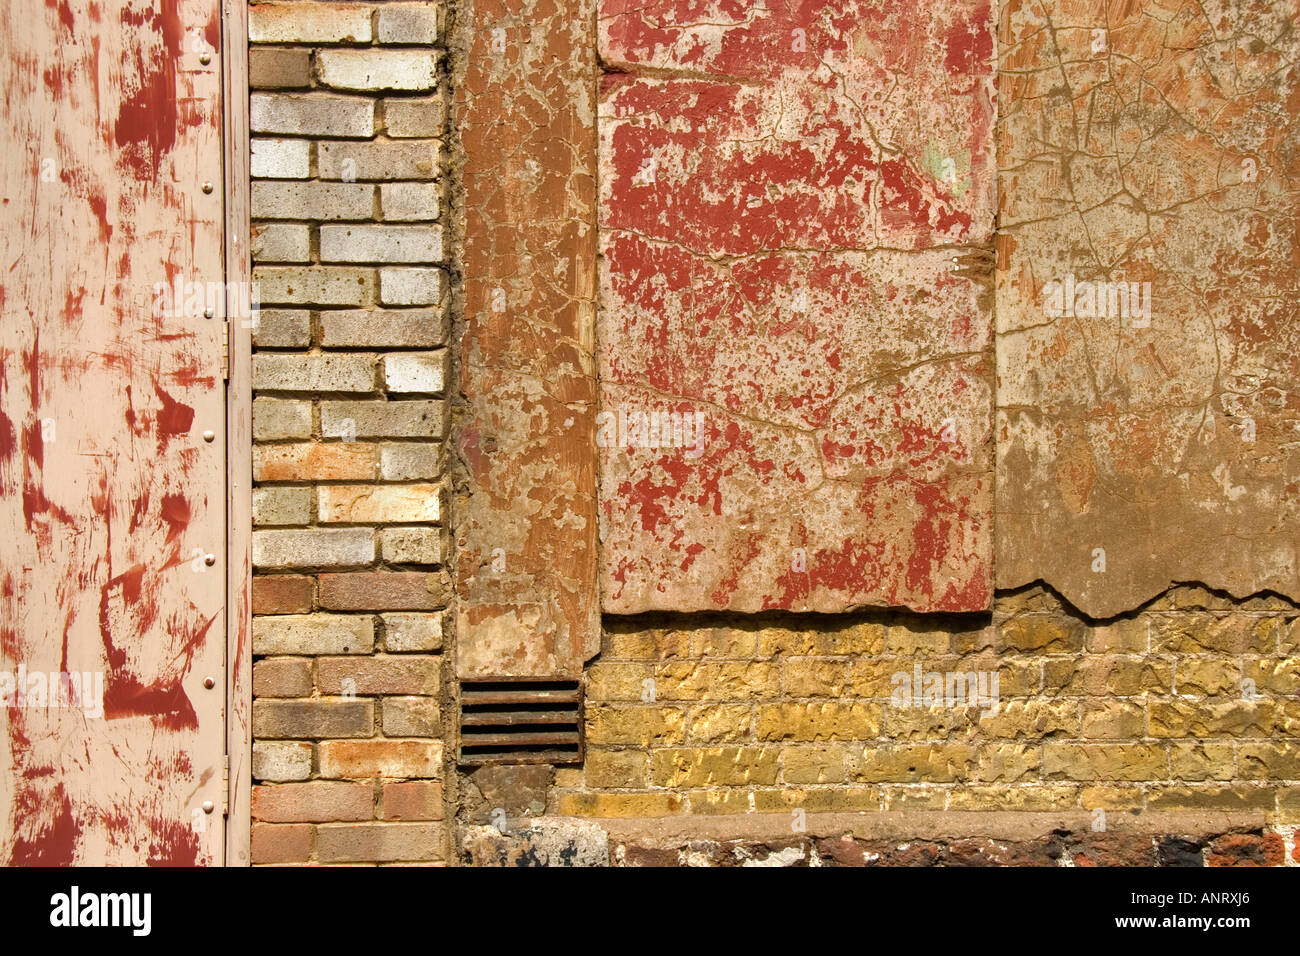 an abstract view of a dilapidated brick wall with crumbling cement and plaster - Stock Image